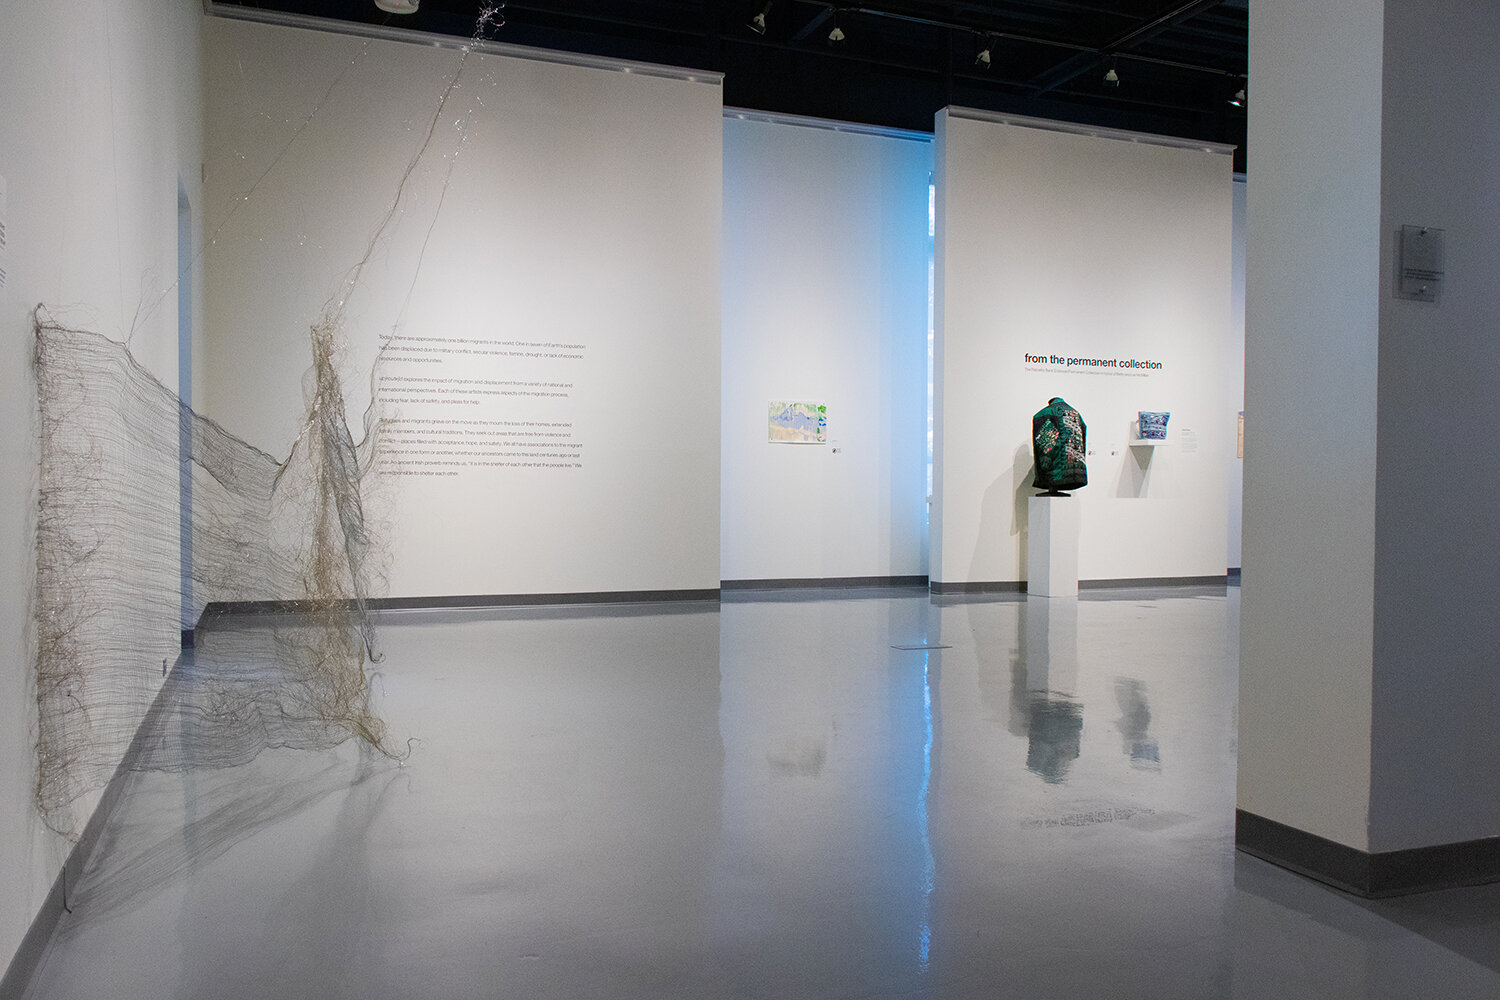 up[route]d - installation view with  Fence © natalie moore                                                      photo ©Spartanburg Art Museum